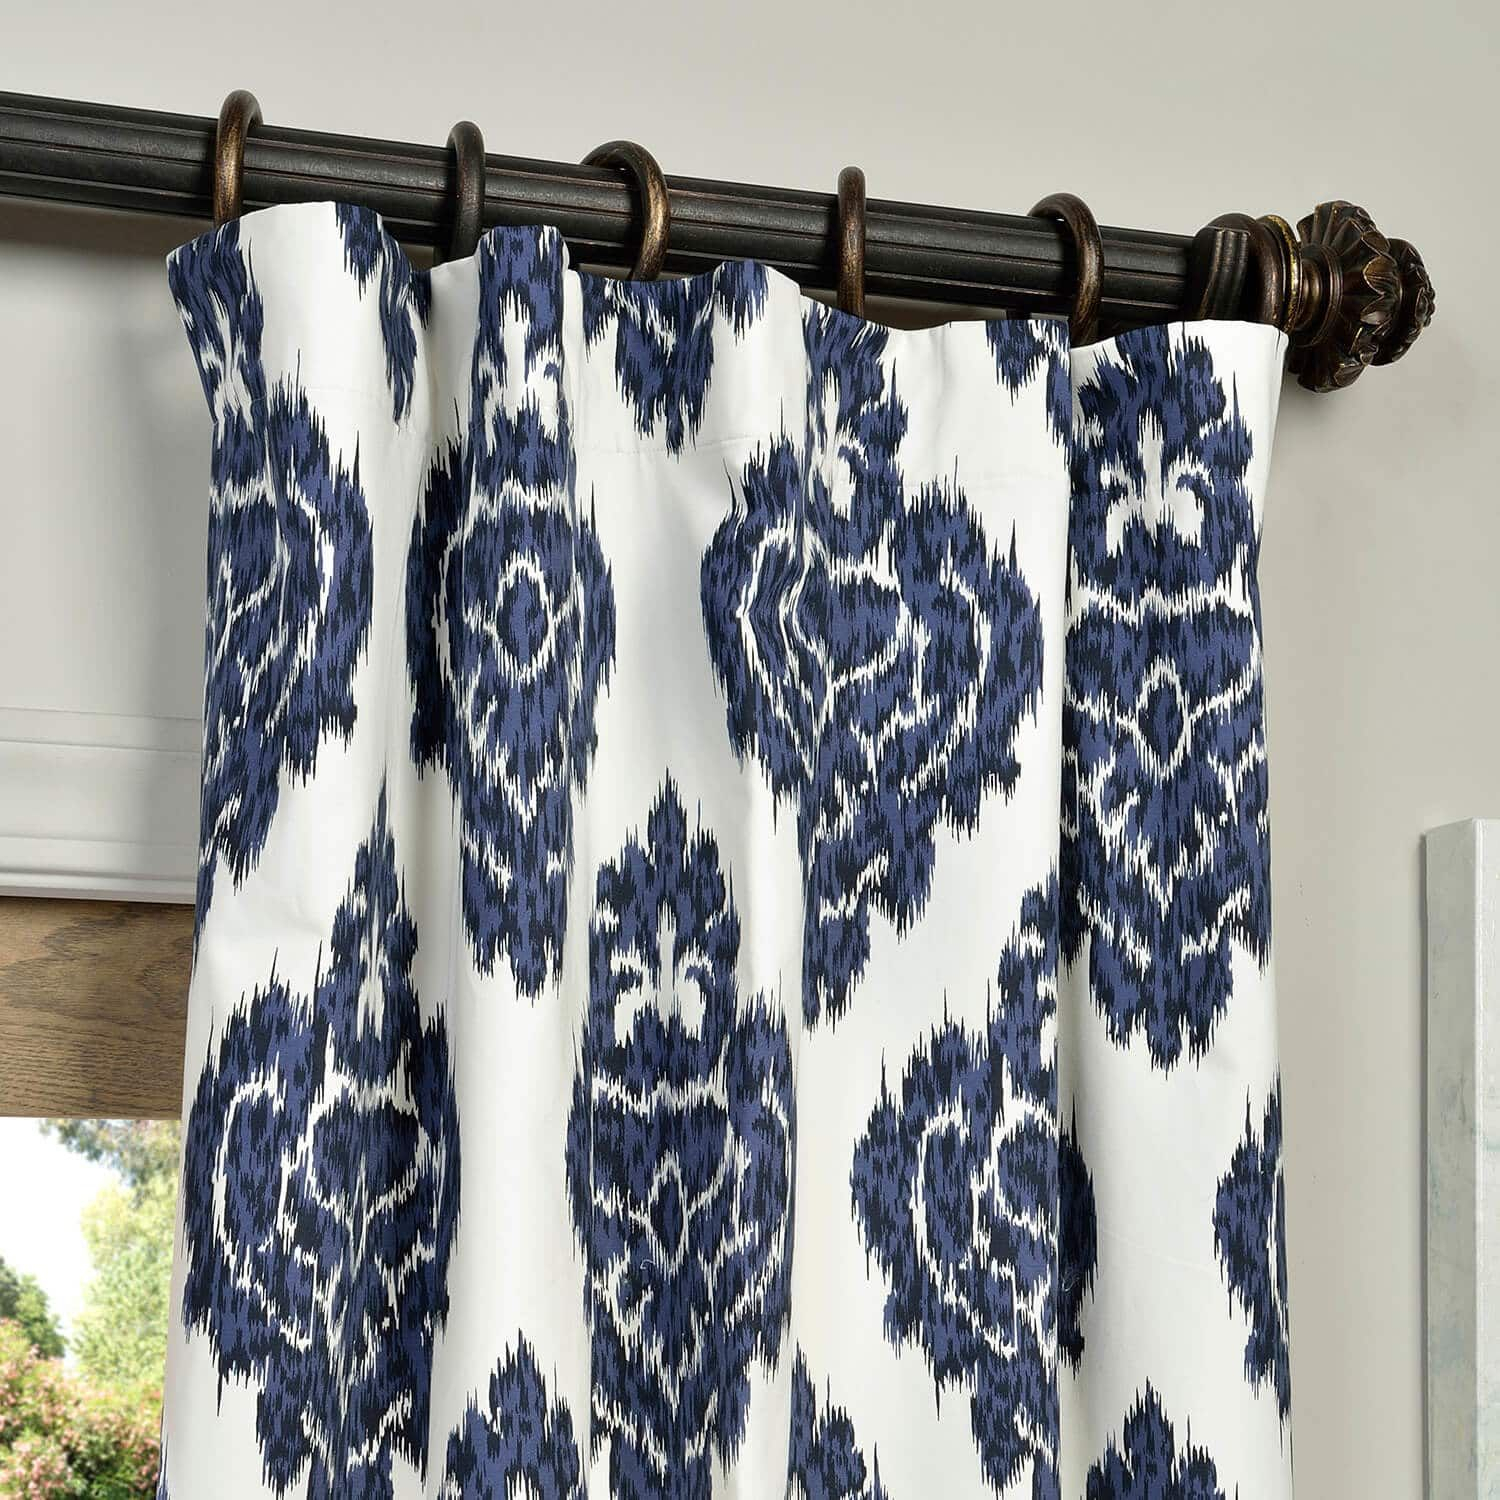 Ikat Blue Printed Cotton Curtain In 2019 | Fabric Throughout Ikat Blue Printed Cotton Curtain Panels (View 18 of 20)